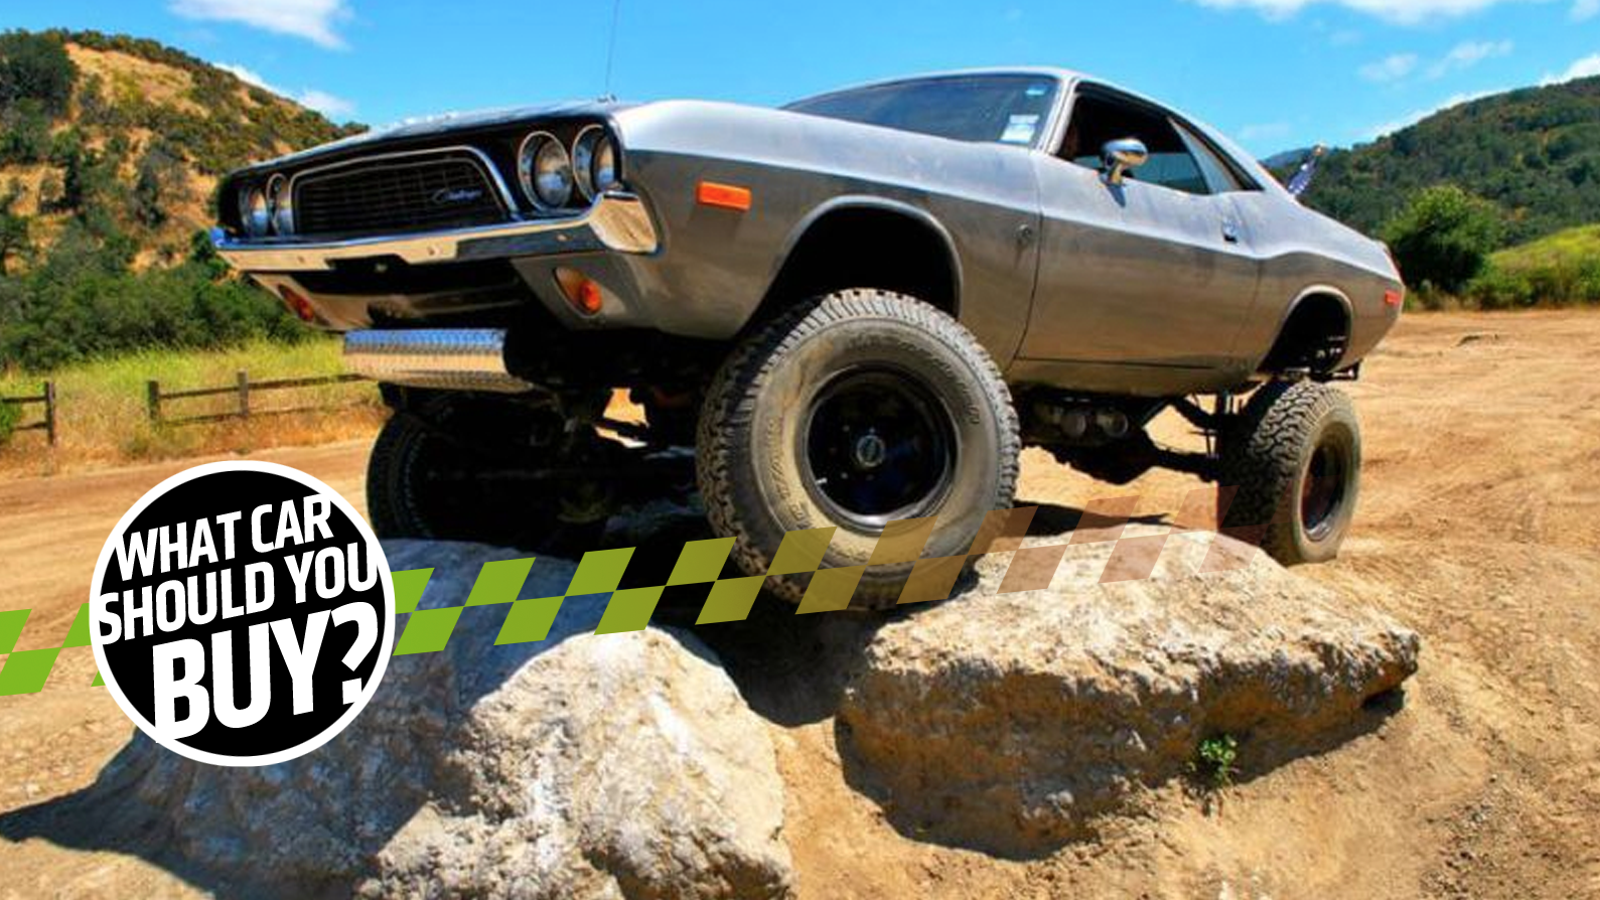 Muscle cars News, Videos, Reviews and Gossip - Jalopnik